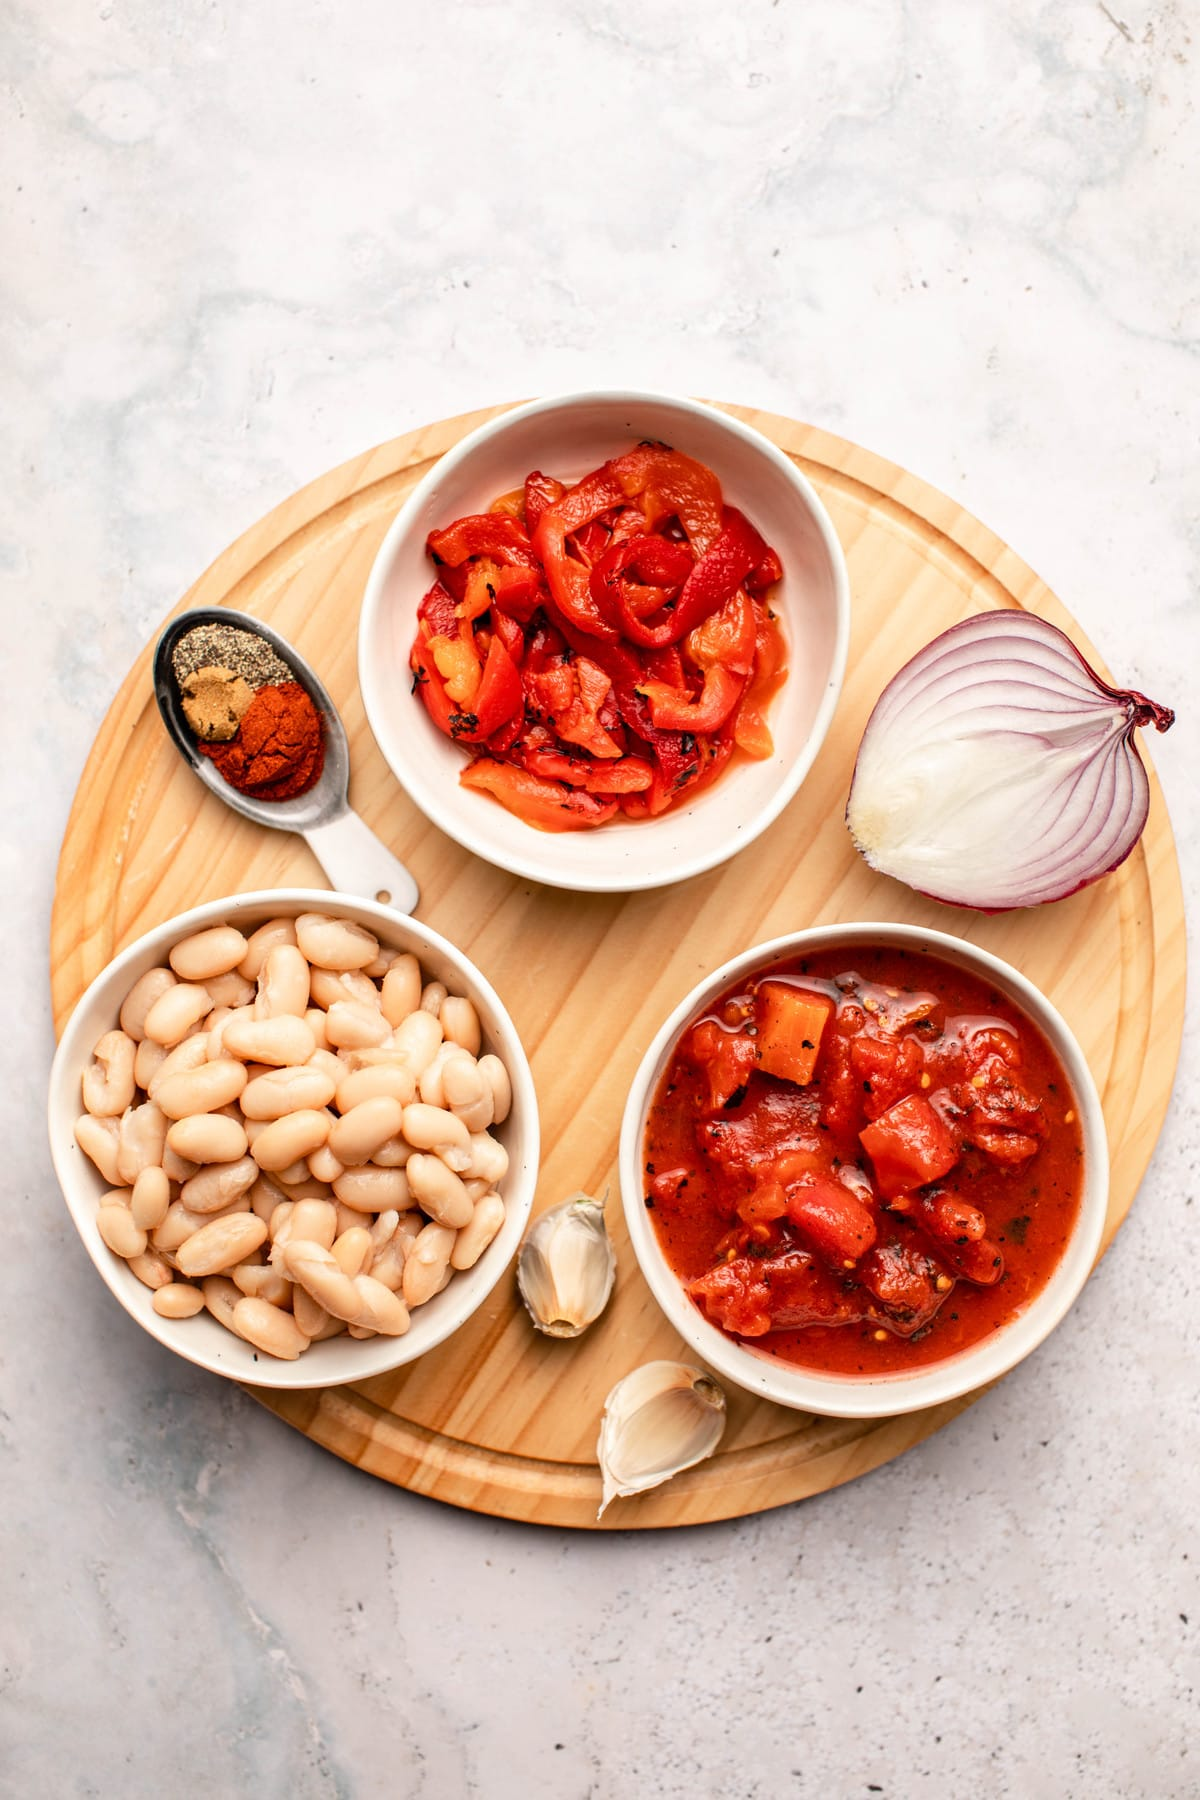 ingredients for sweet and smoky white beans on wood cutting board